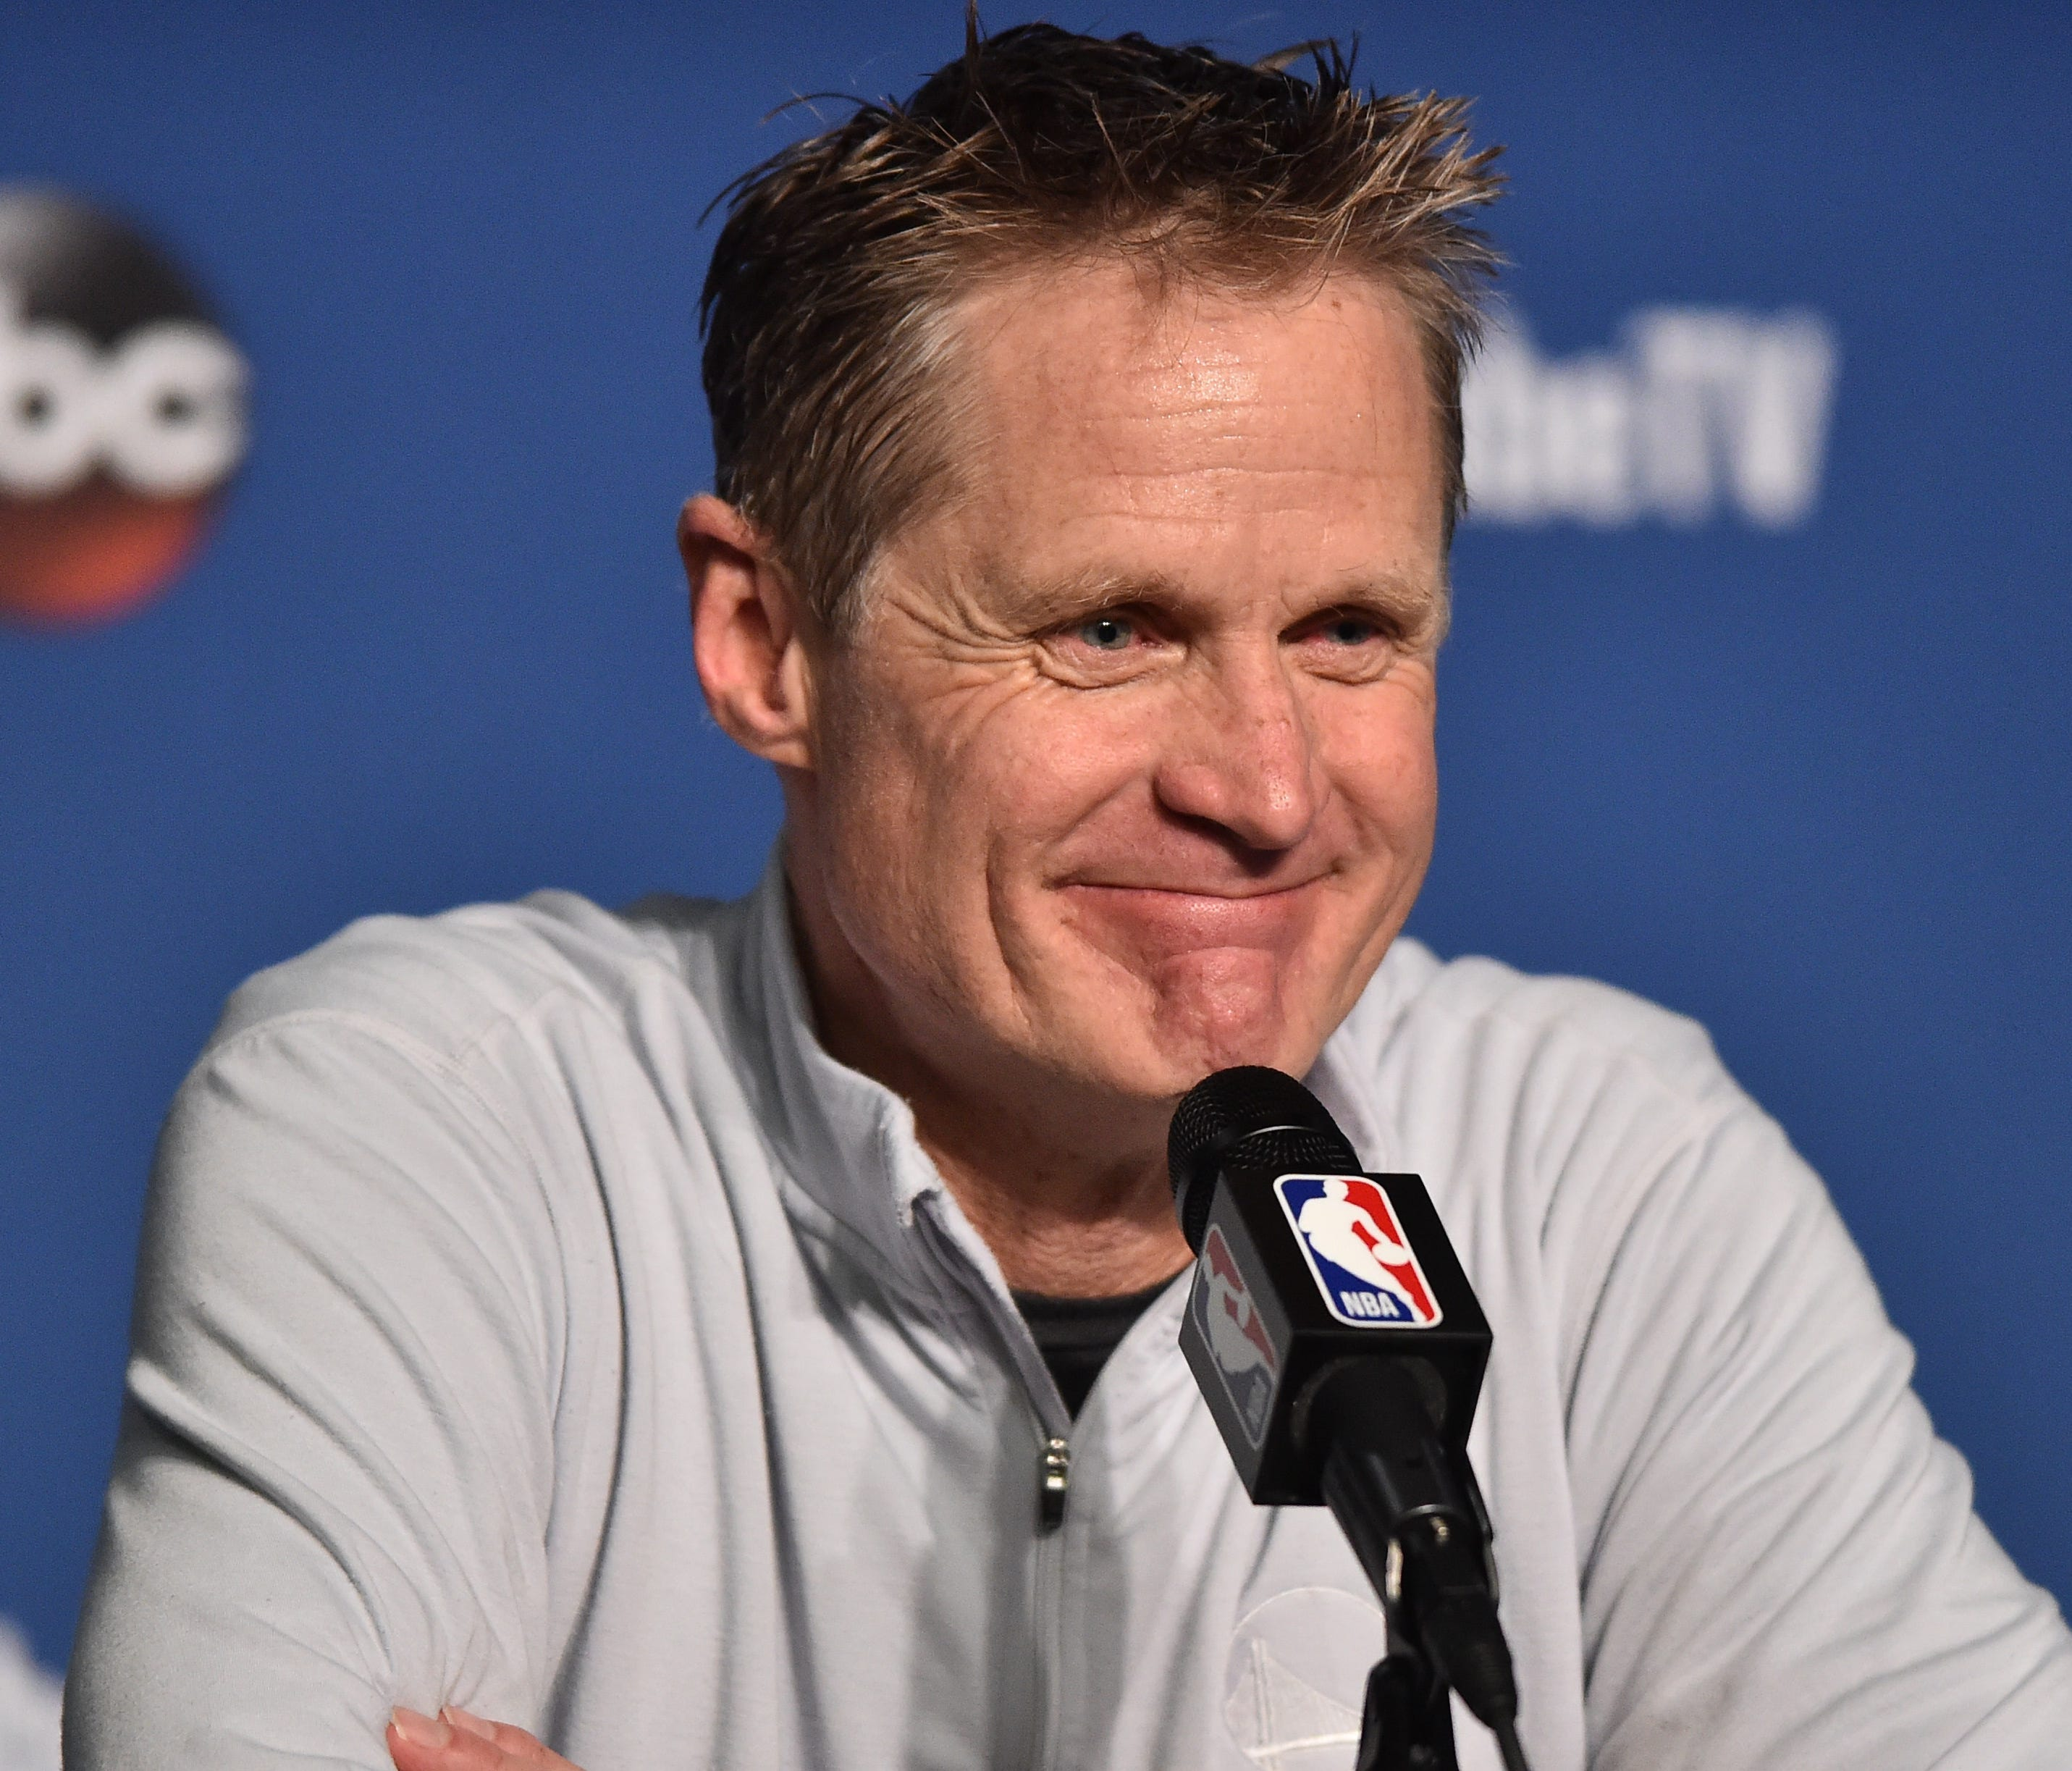 Golden State Warriors head coach Steve Kerr has had his contract extended by the team.